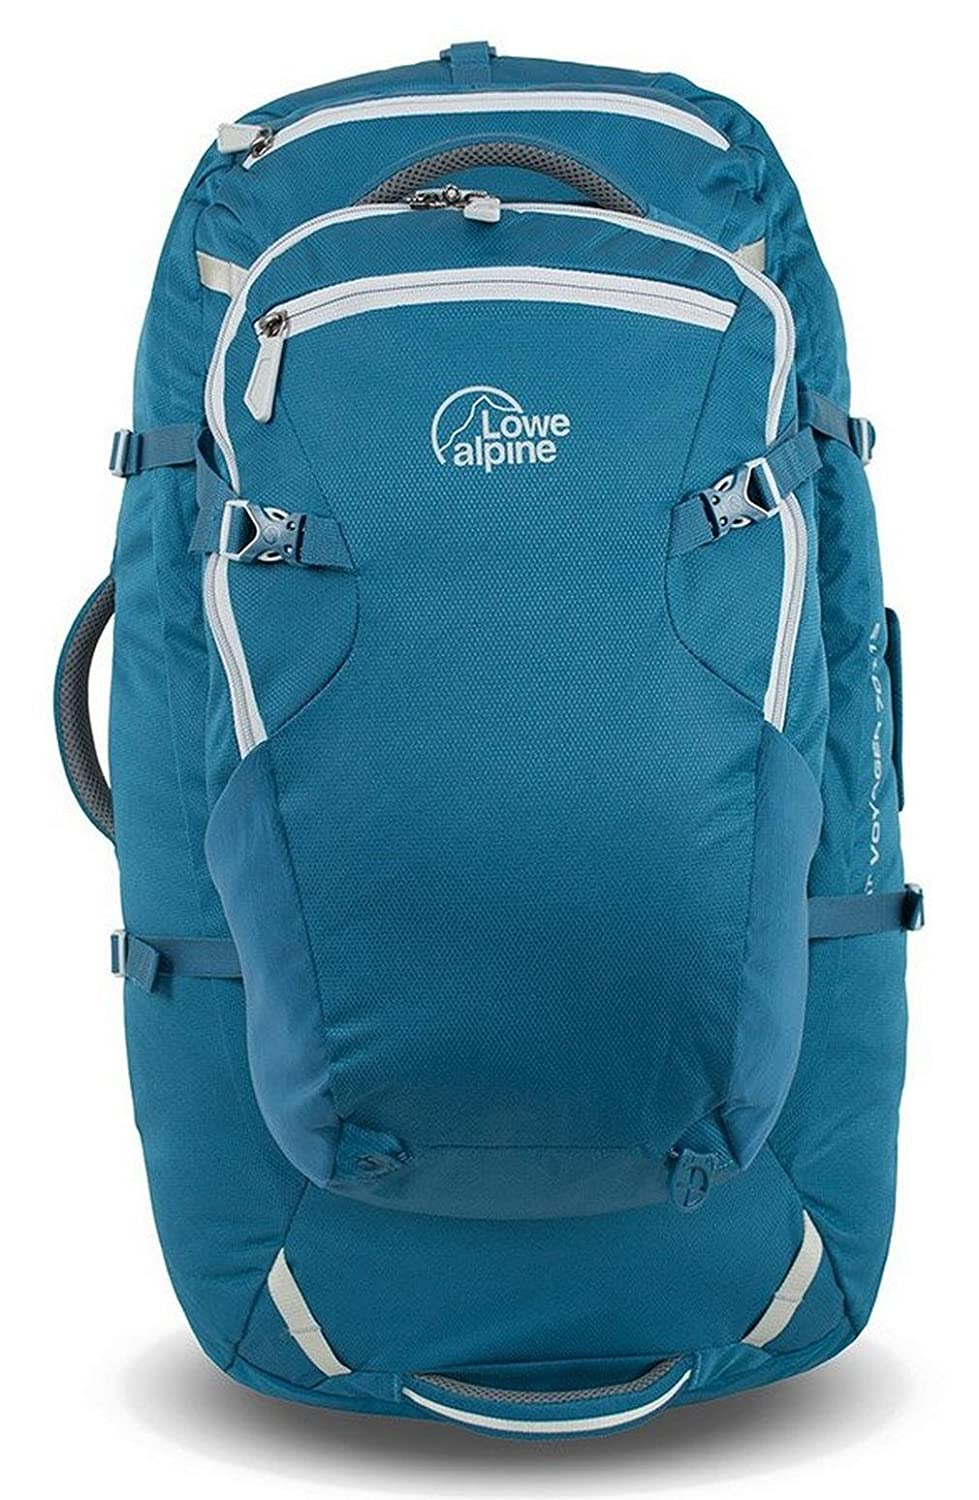 LOWE ALPINE AT VOYAGER ND65:15 BACKPACK (ATLANTIC BLUE/LIMESTONE) B00SHGTXQQ  One Size